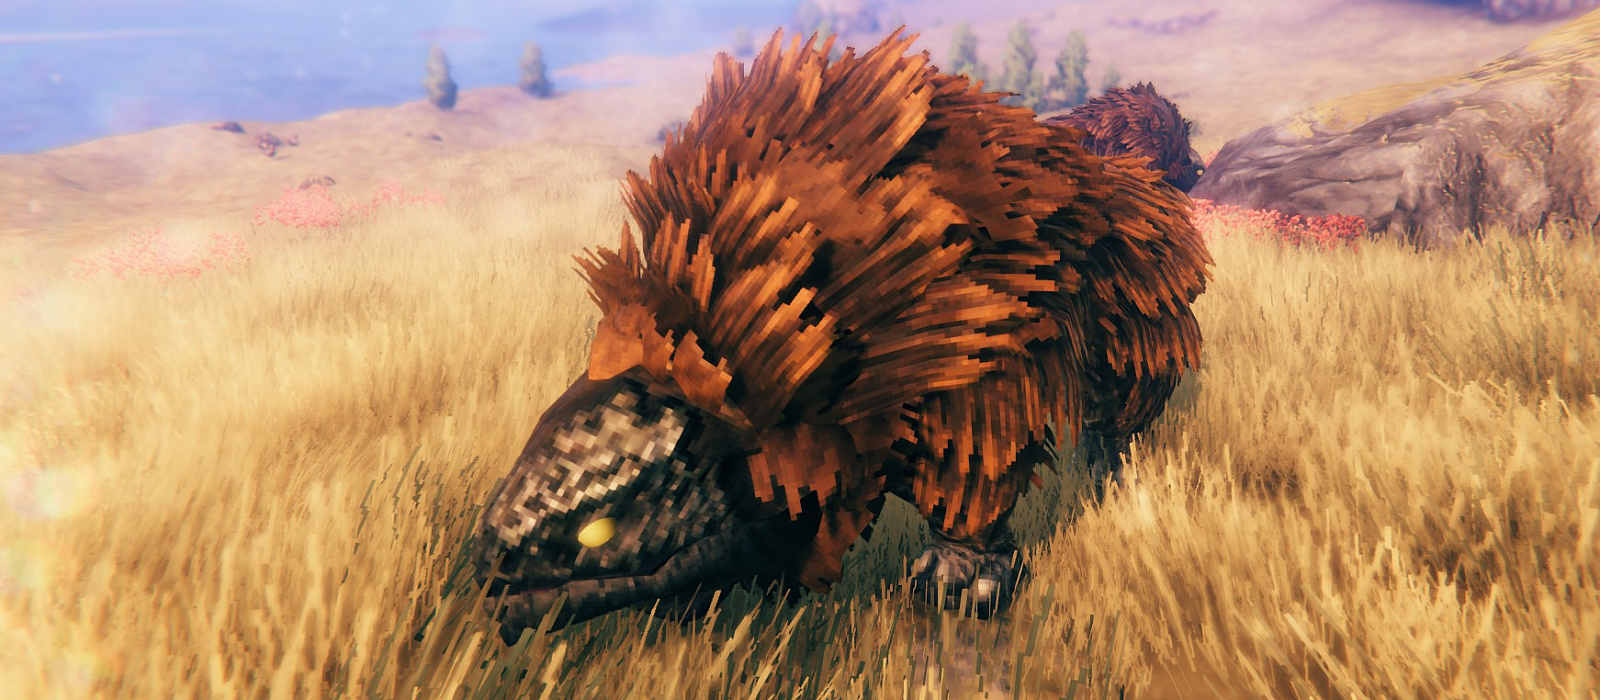 How to tame a bull lizard in Valheim. How to build a blast furnace and where to find ferrous metal